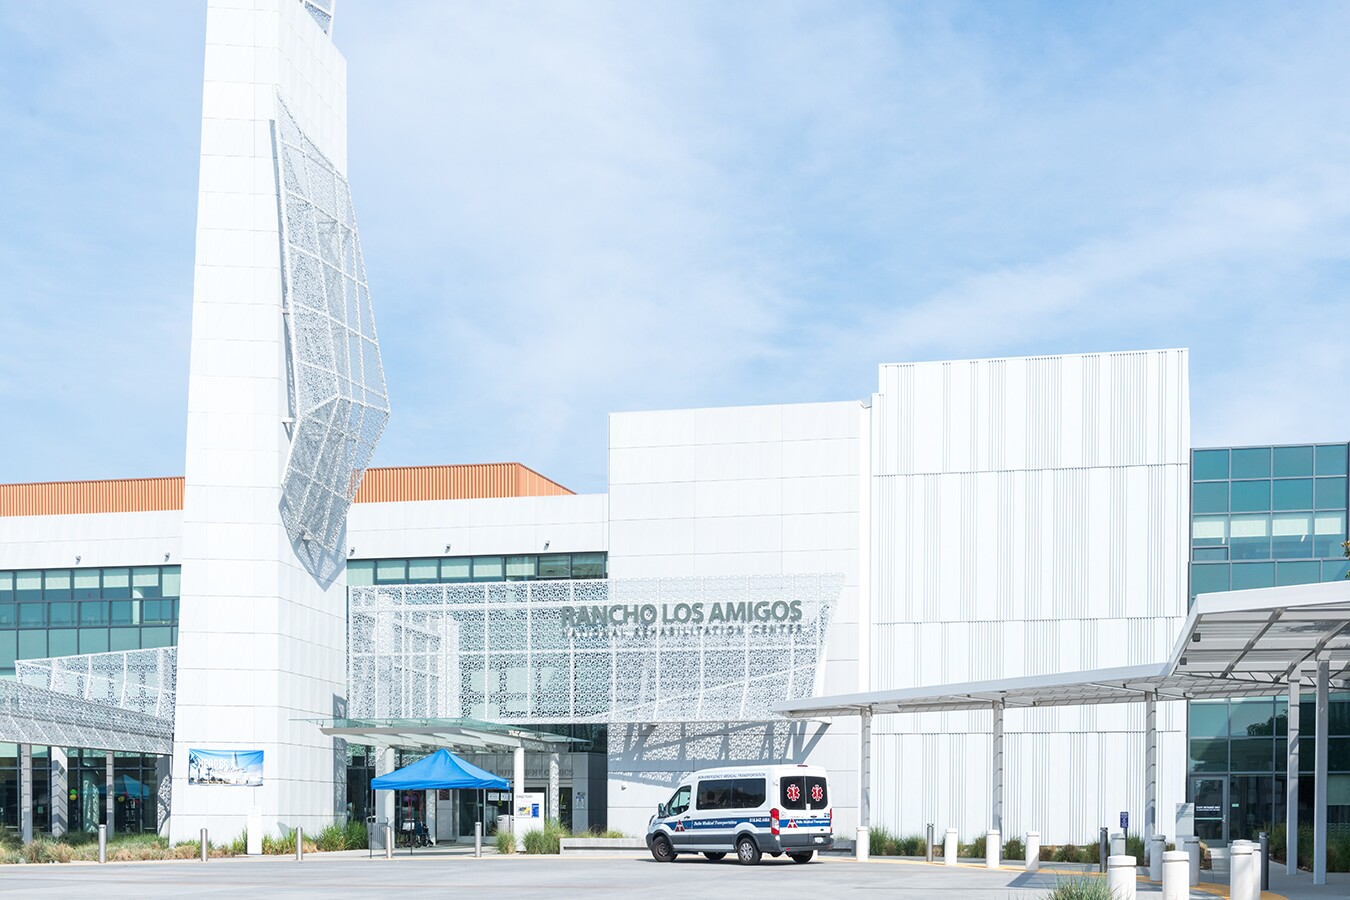 Rancho Los Amigos National Rehabilitation Center in Downey is one of L.A. County's four public hospitals and the only one dedicated to rehabilitation. The hospital serves mostly Latino, low-income patients.